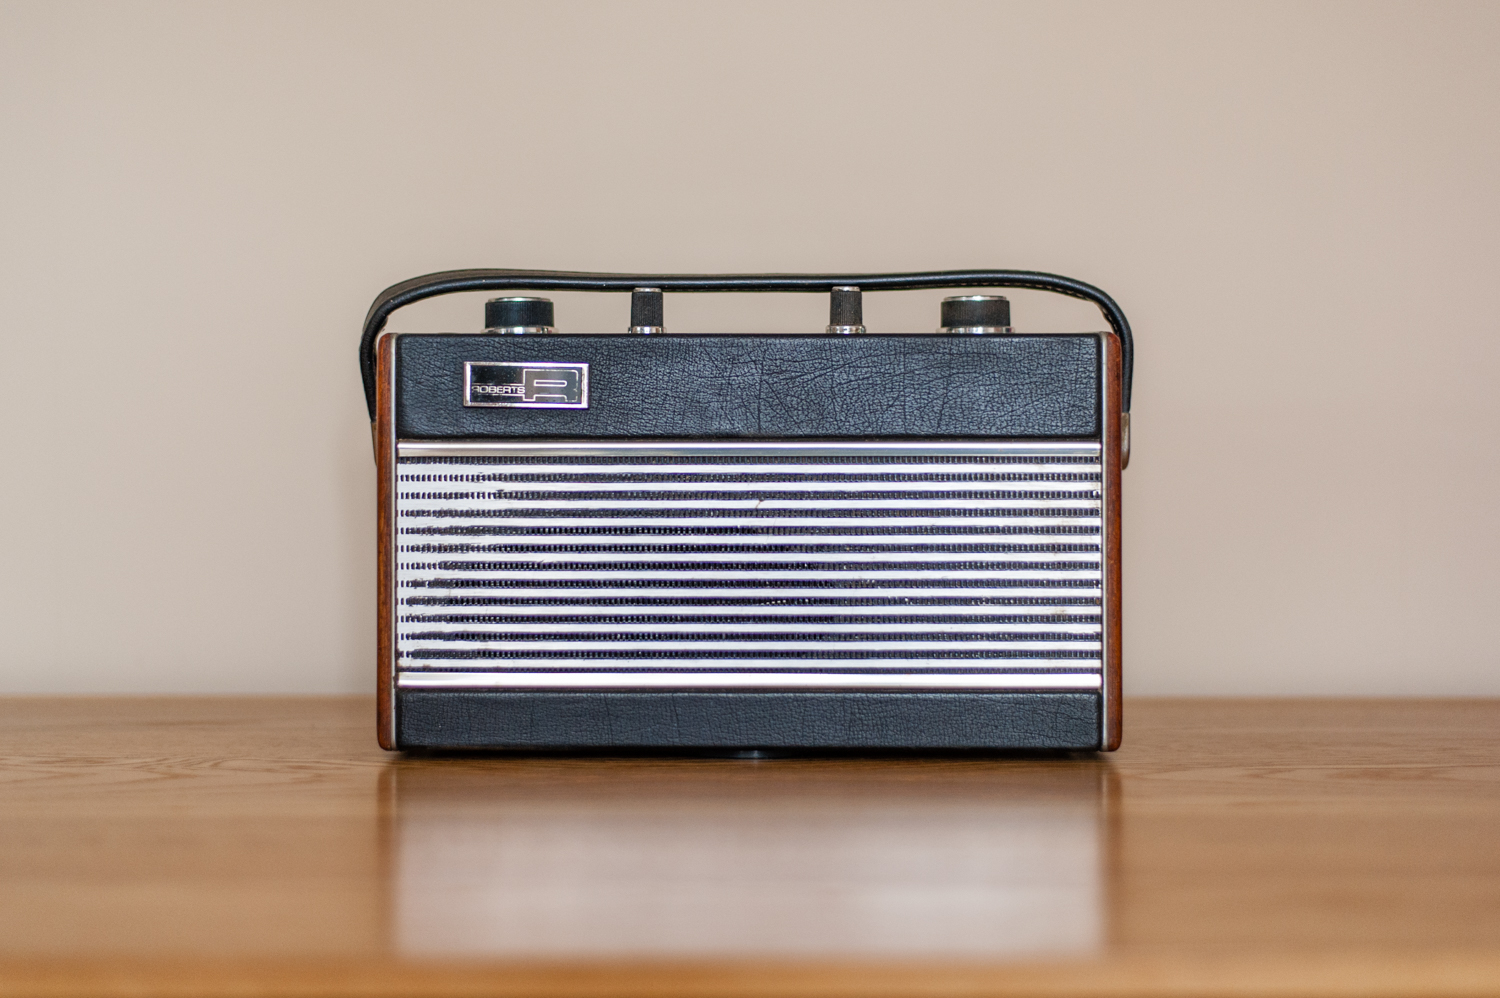 An old Roberts FM radio